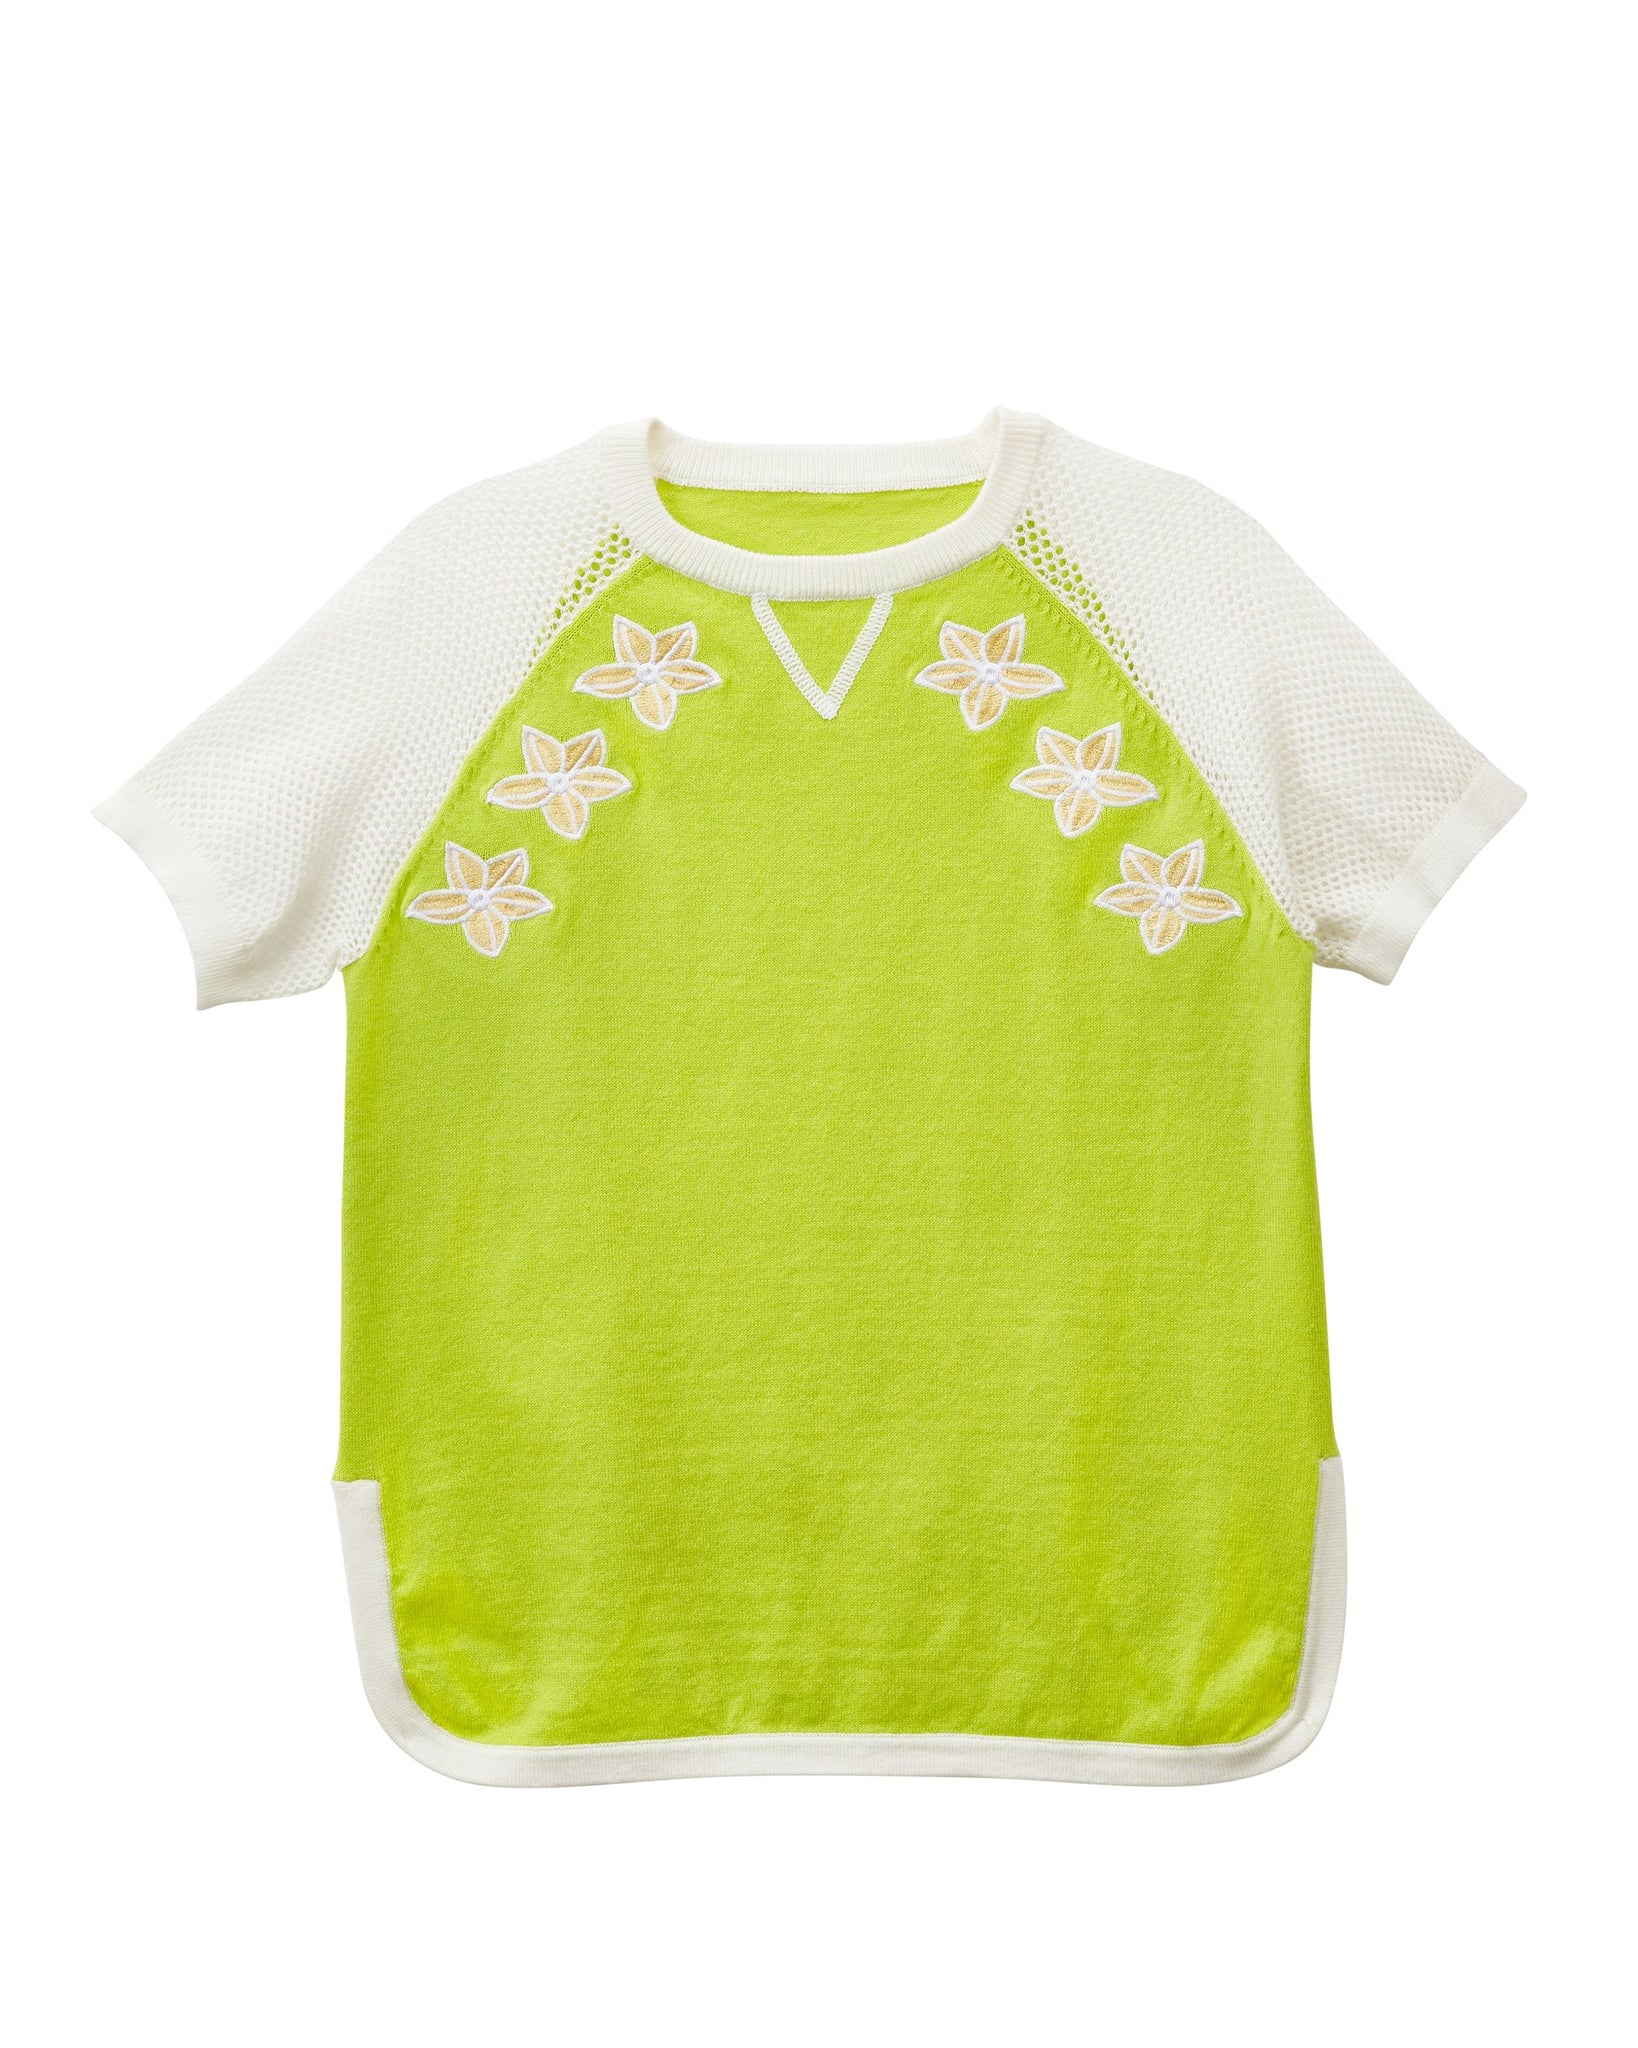 MANO PLUS | Pagoda Kingdom | Frangipani Knitted Top